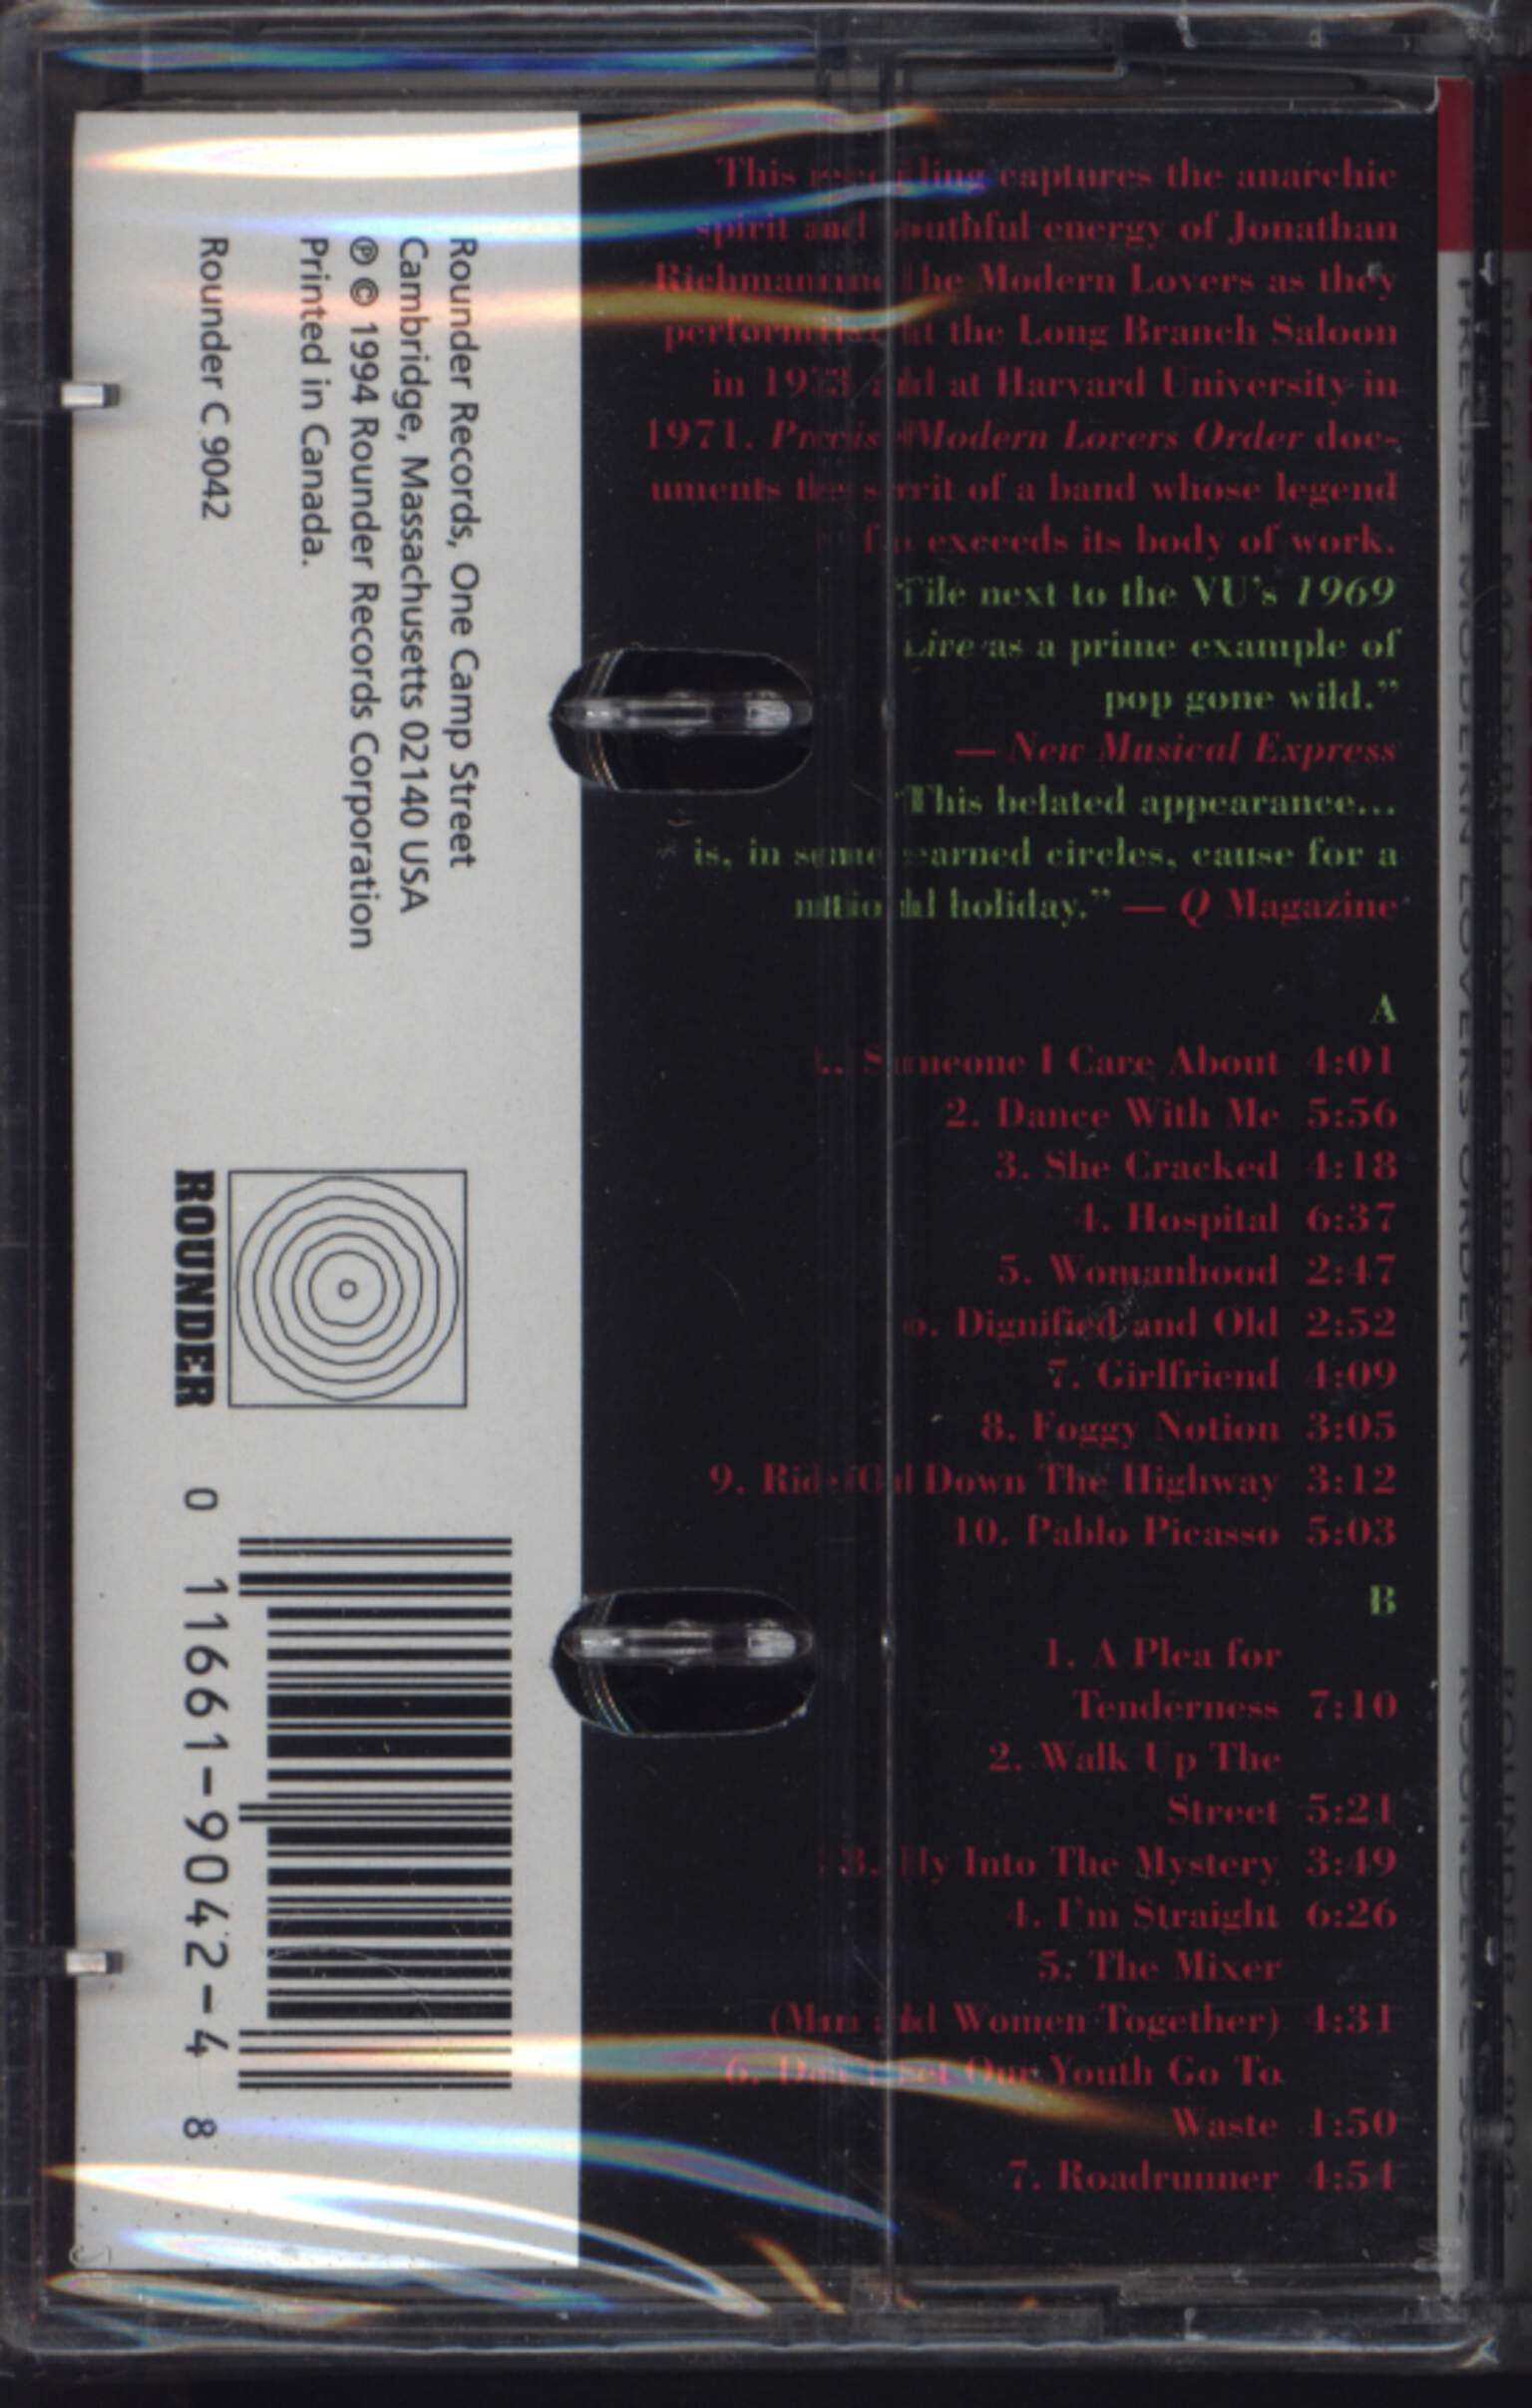 The Modern Lovers: Precise Modern Lovers Order (Live In Berkeley And Boston), Compact Cassette